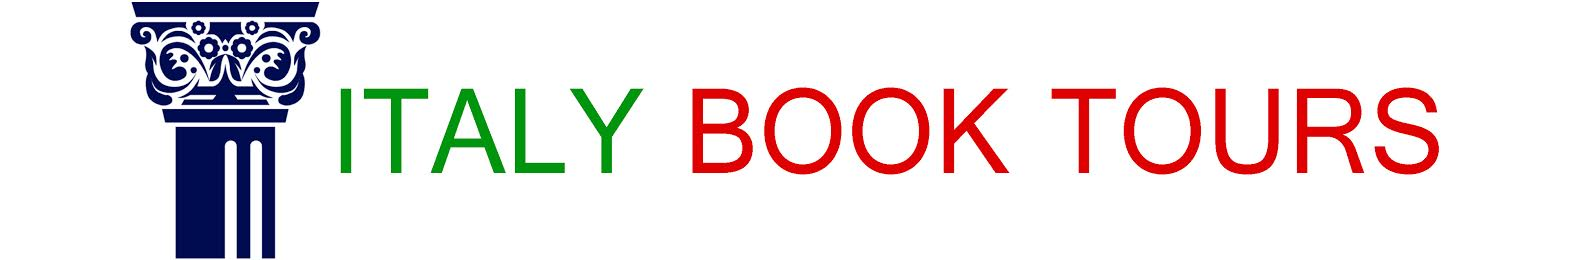 Italy Book Tours Logo official